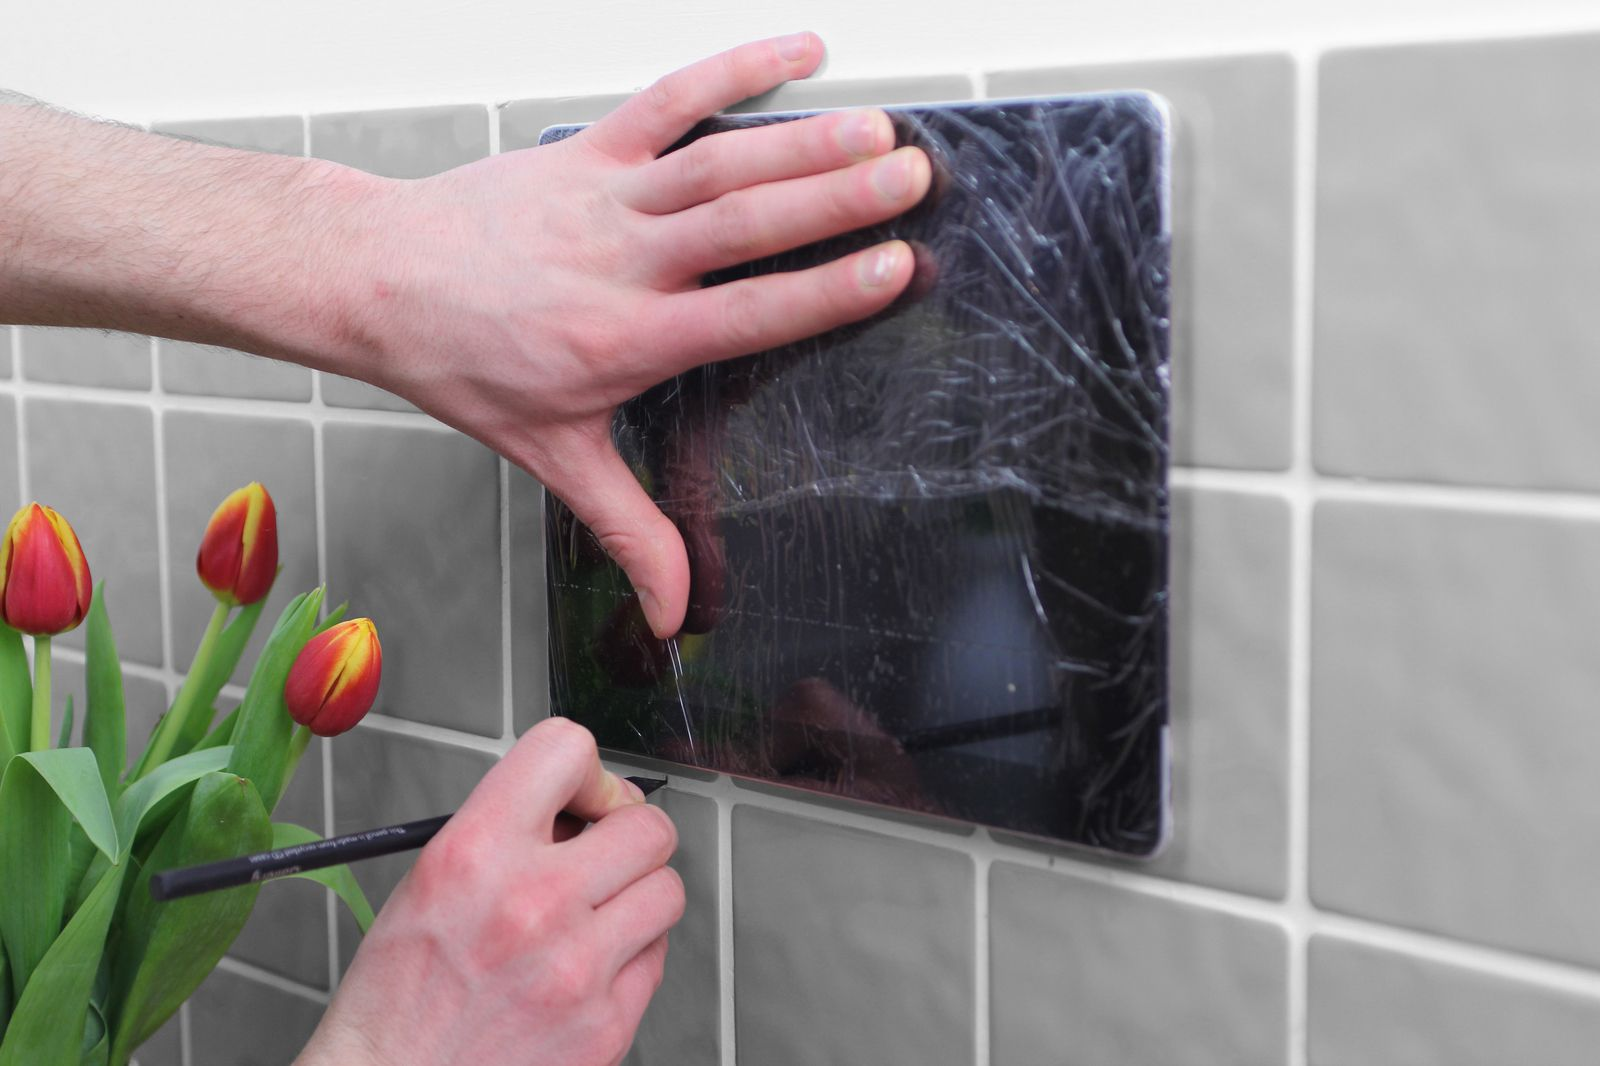 Ipad bathroom wall mount - Ipad Covered In Cling Film Being Held Onto Wall With Positions Being Marked On Wall